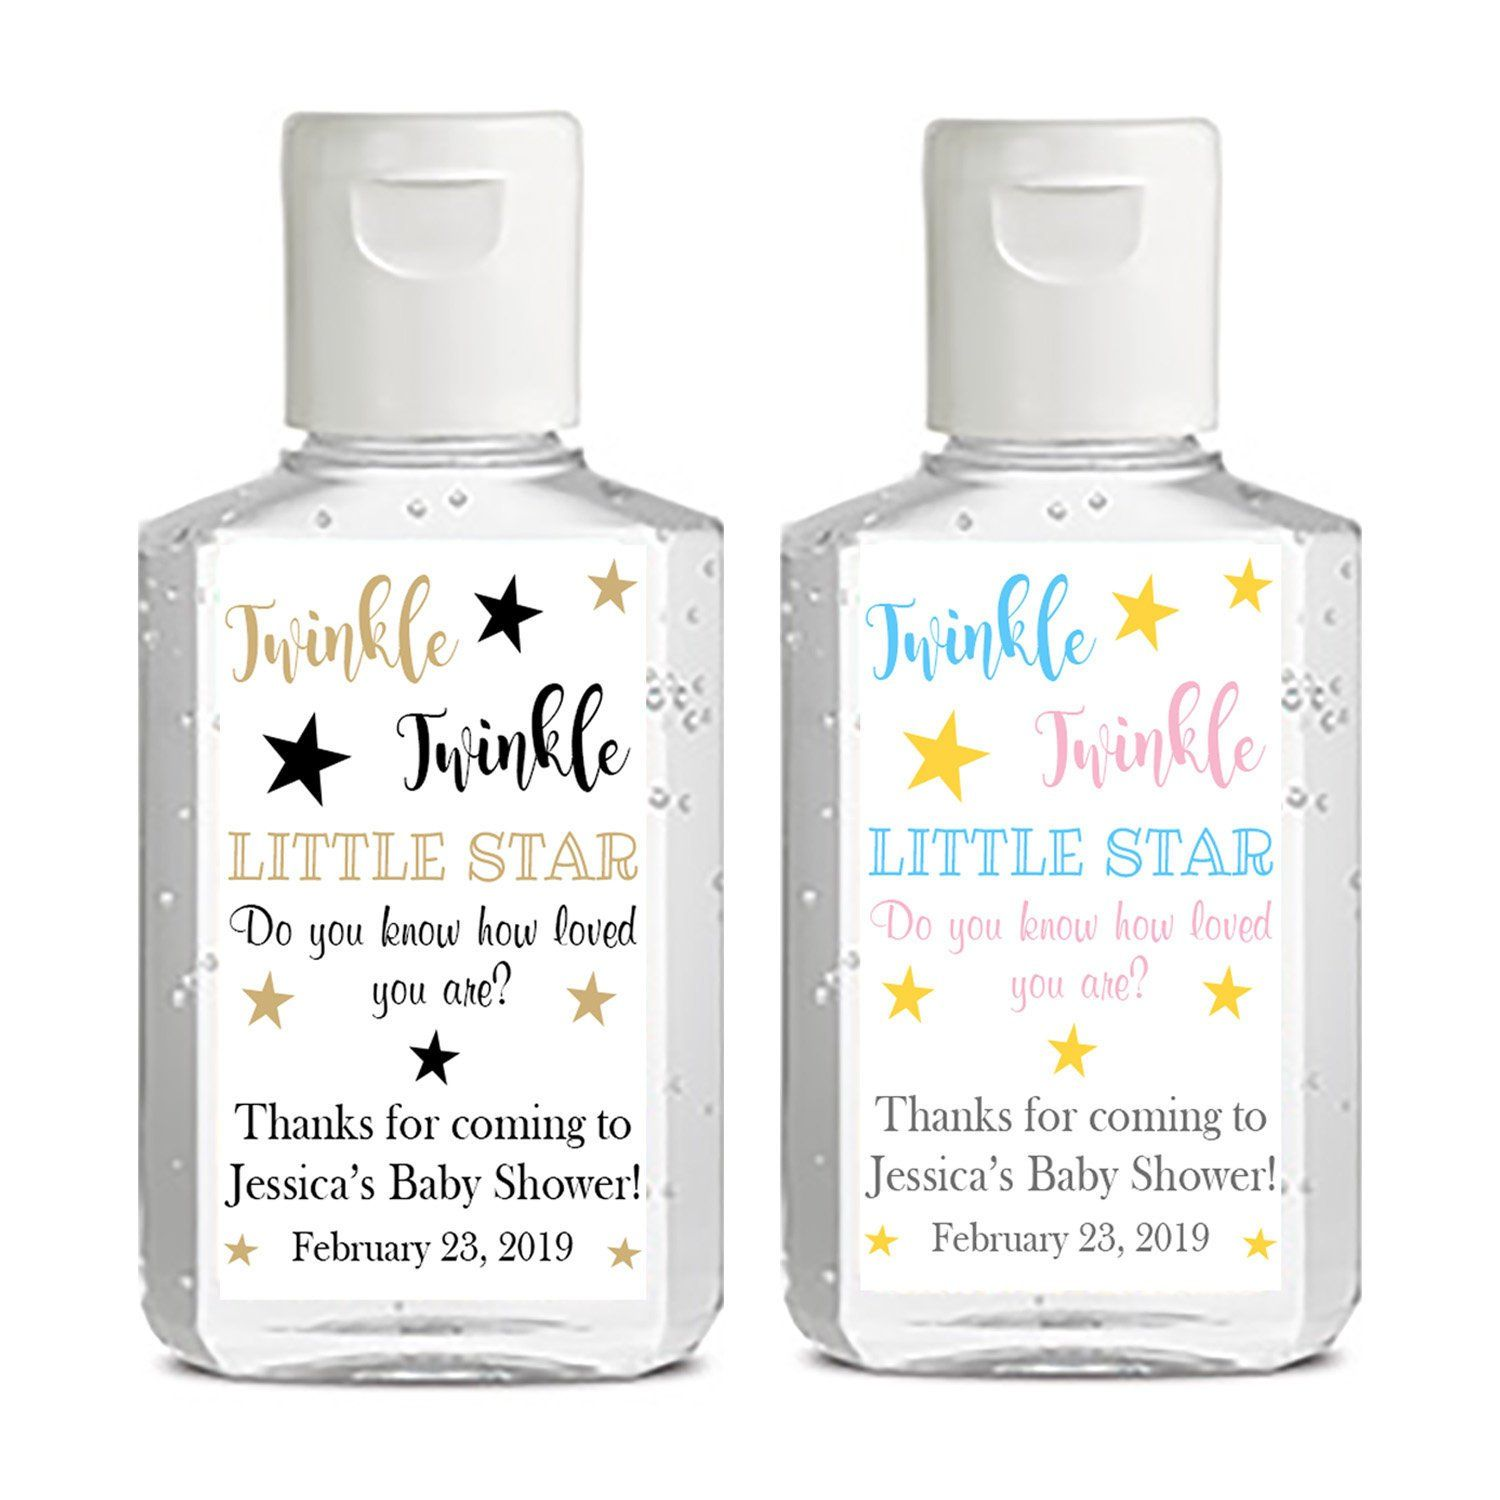 Personalized Mini Hand Sanitizer Labels Pink And Gold For Baby